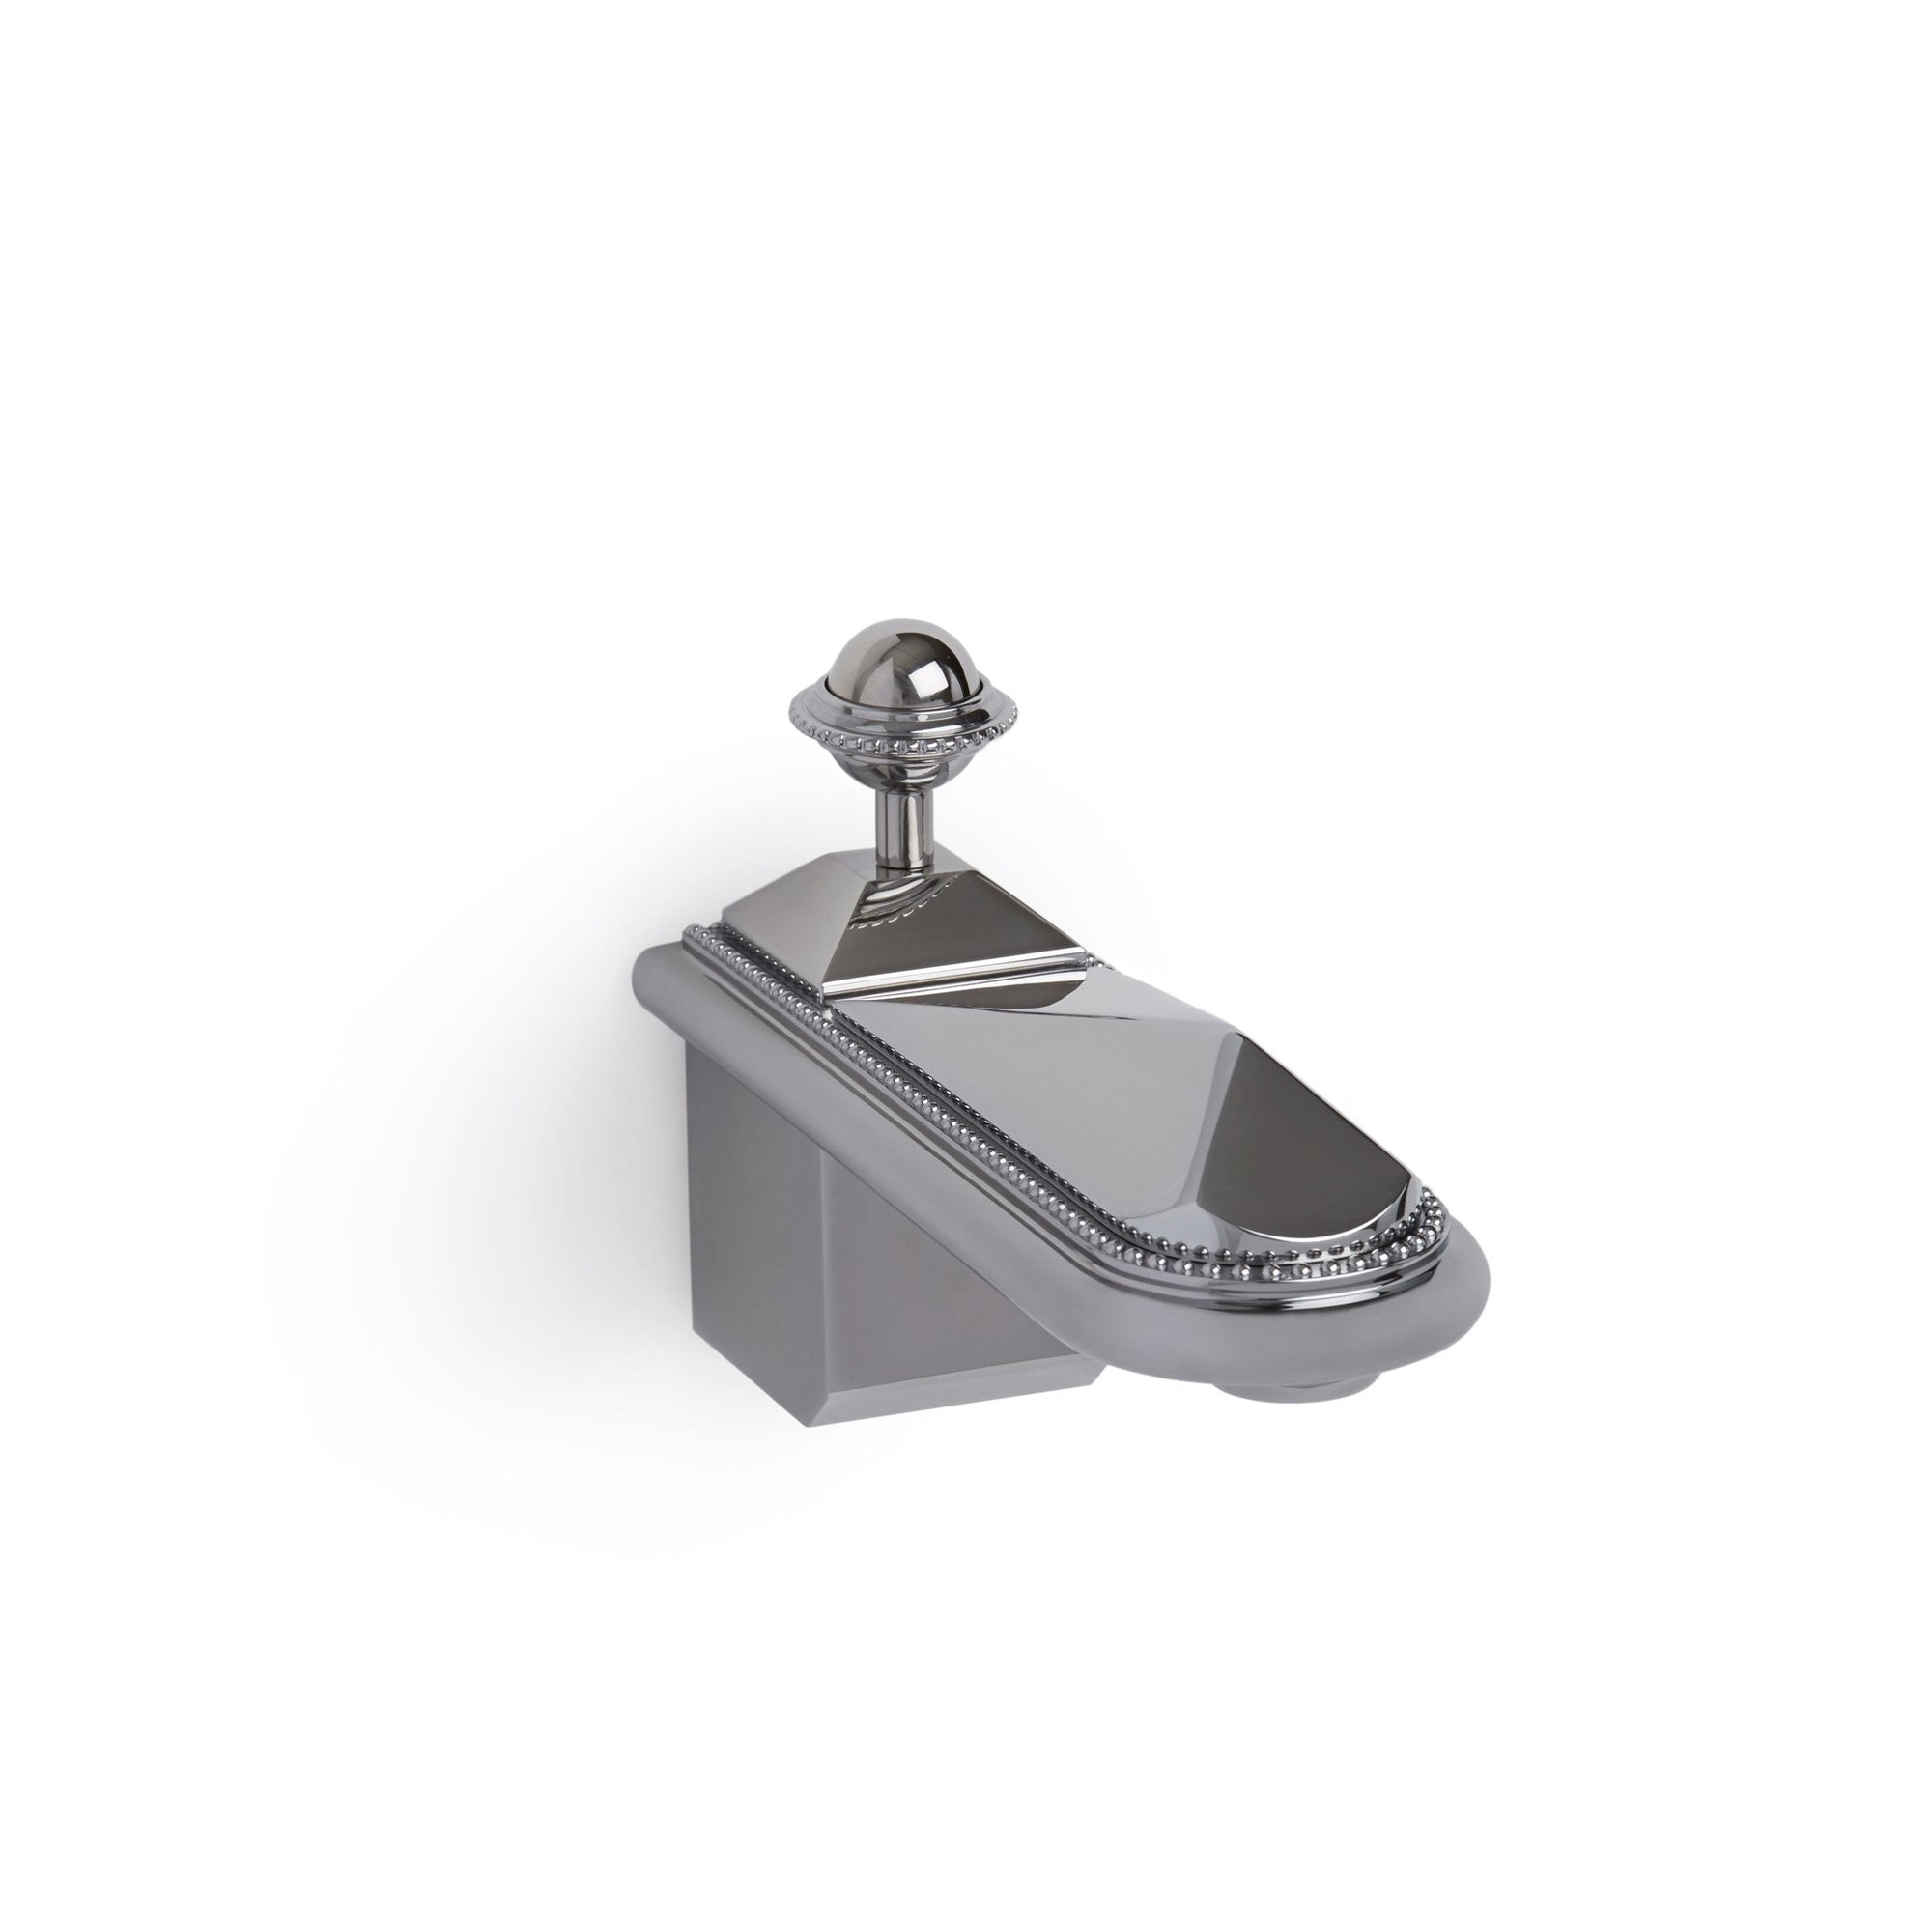 0803TUB-CP Sherle Wagner International Pyramid Wall Mount Tub Spout in Polished Chrome metal finish